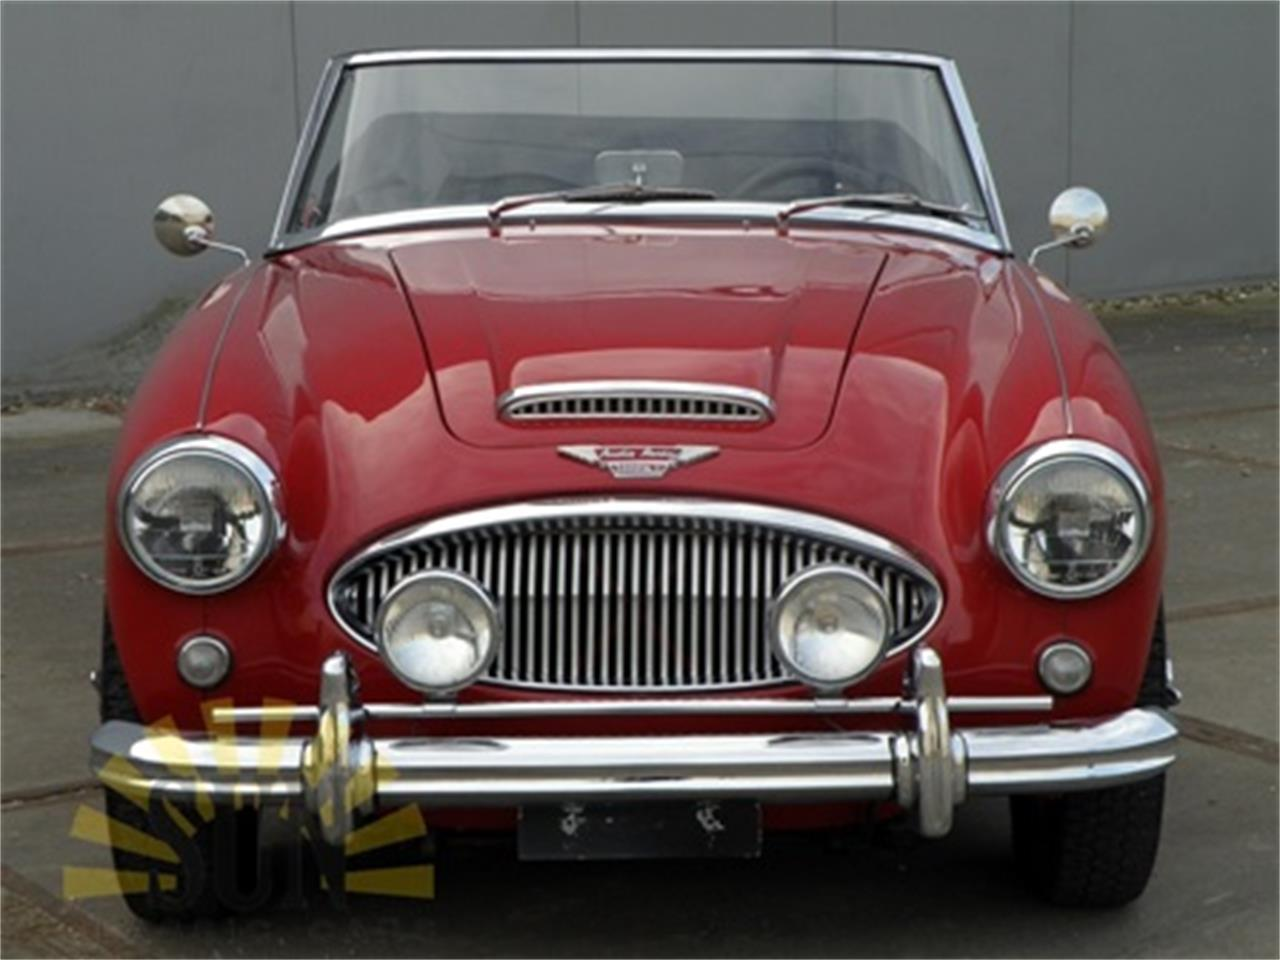 Large Picture of Classic '63 3000 Mark II located in Waalwijk Noord Brabant - $76,500.00 Offered by E & R Classics - MCD8